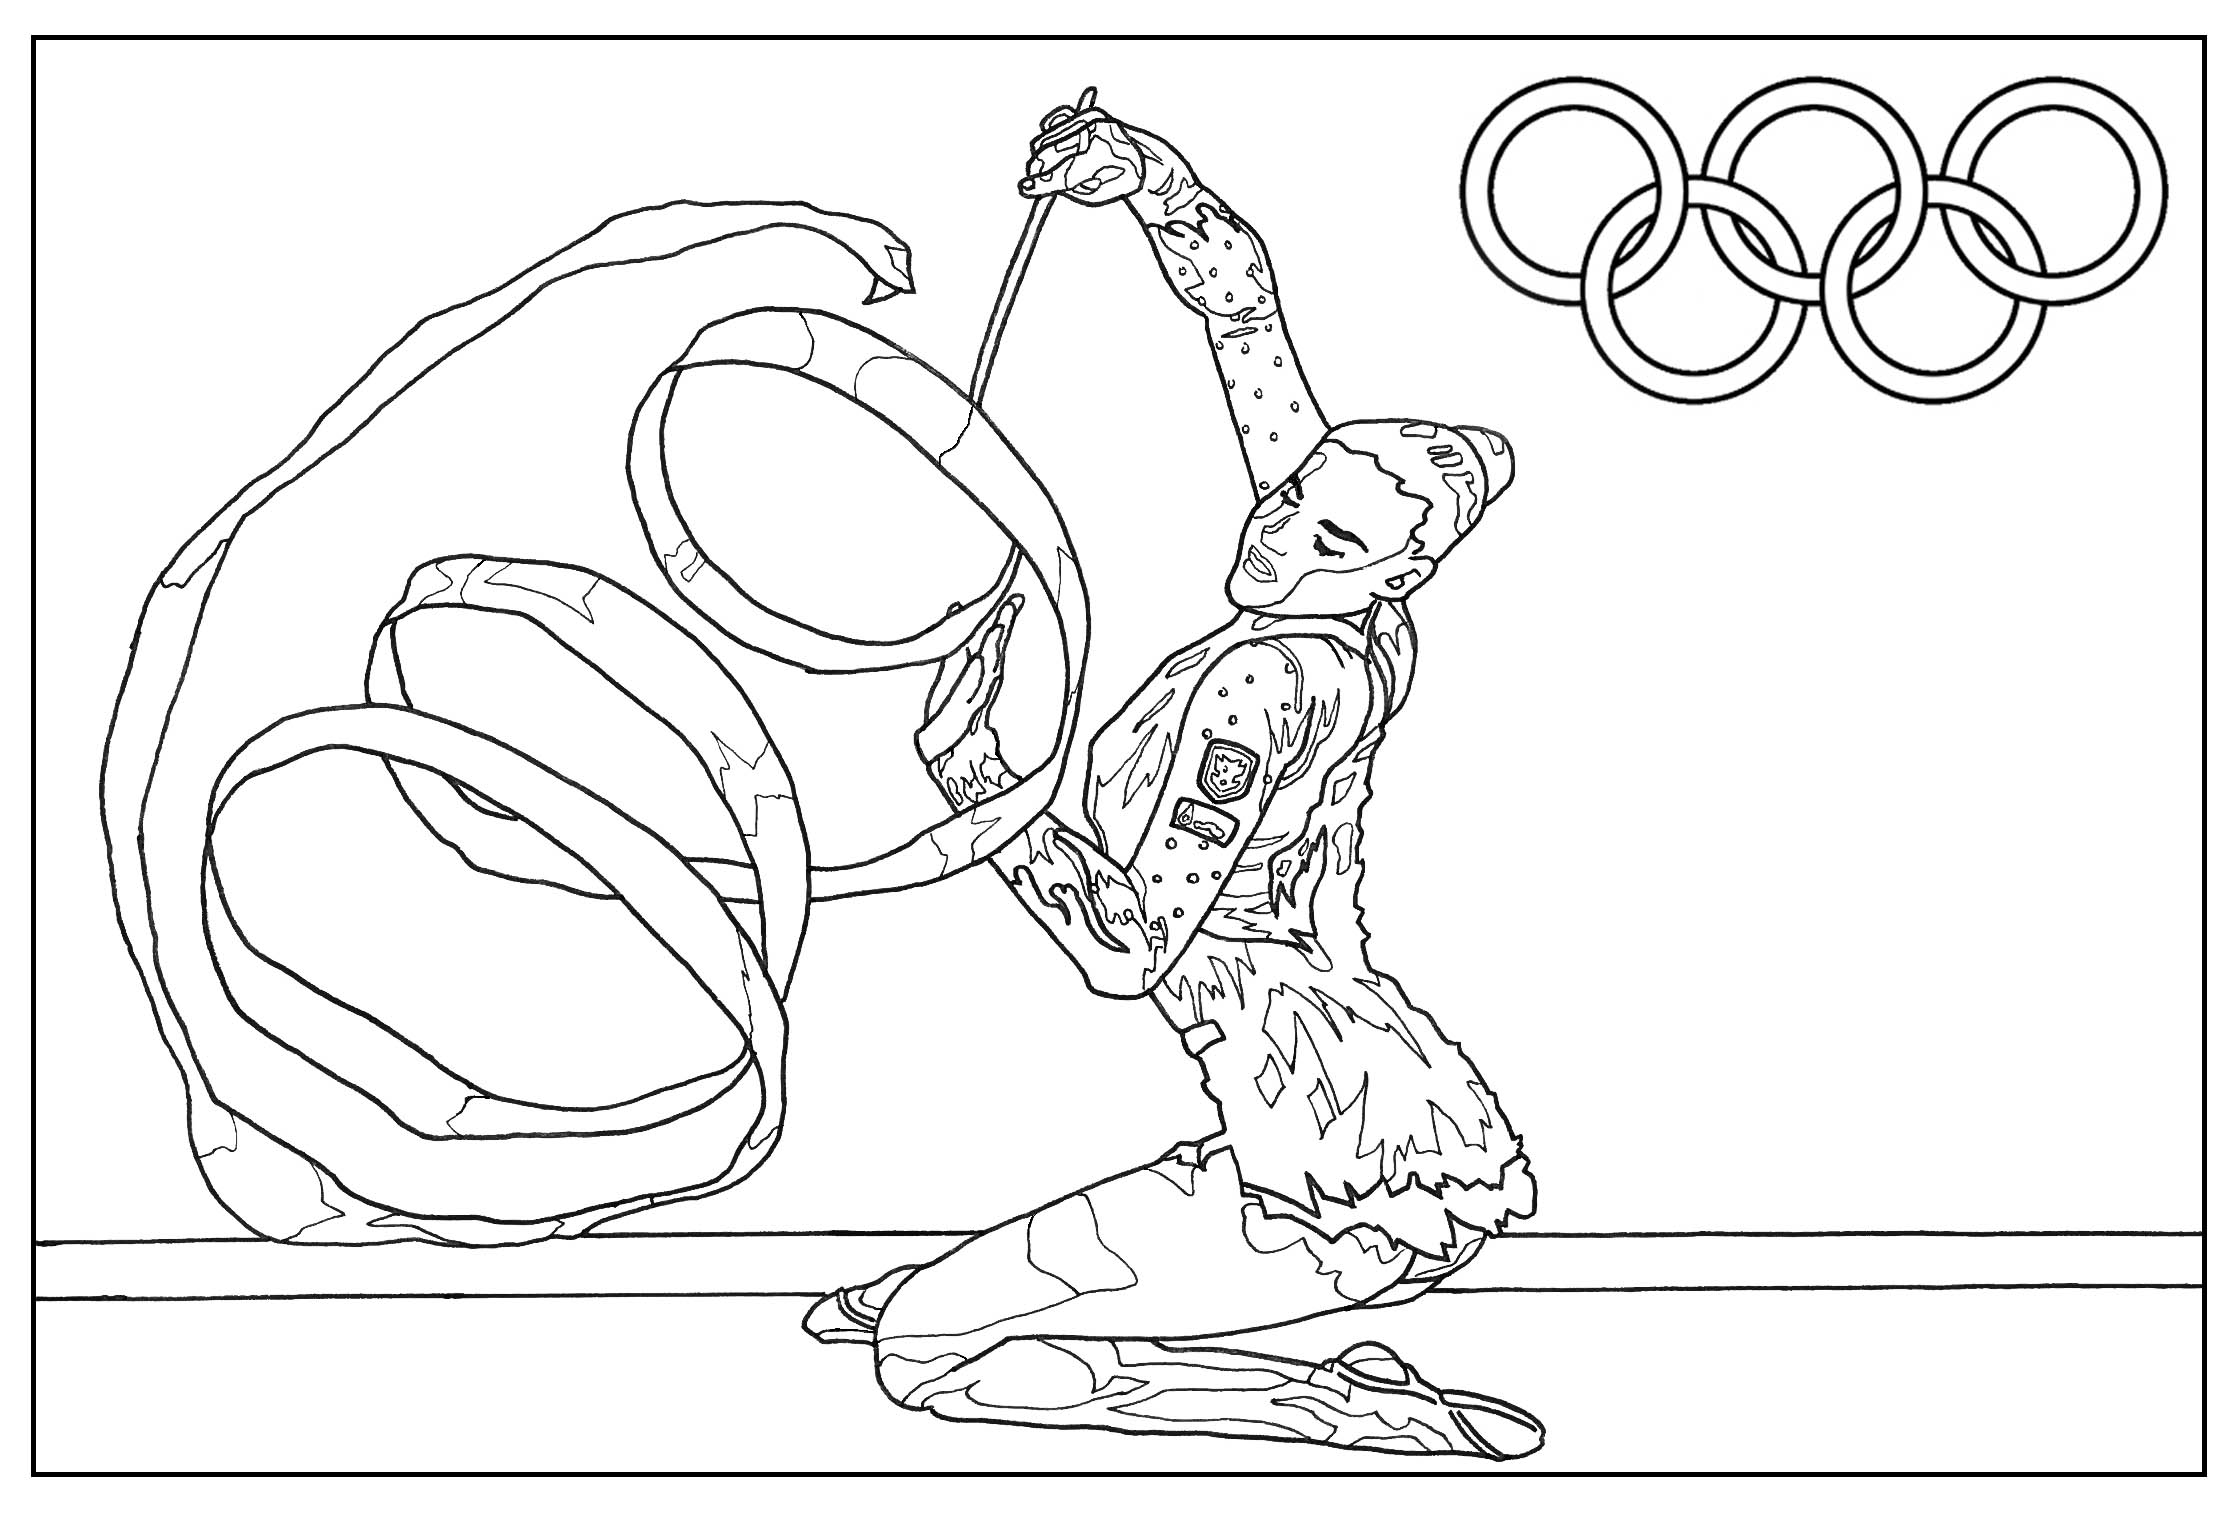 Olympic Sports Coloring Pages At Getcolorings